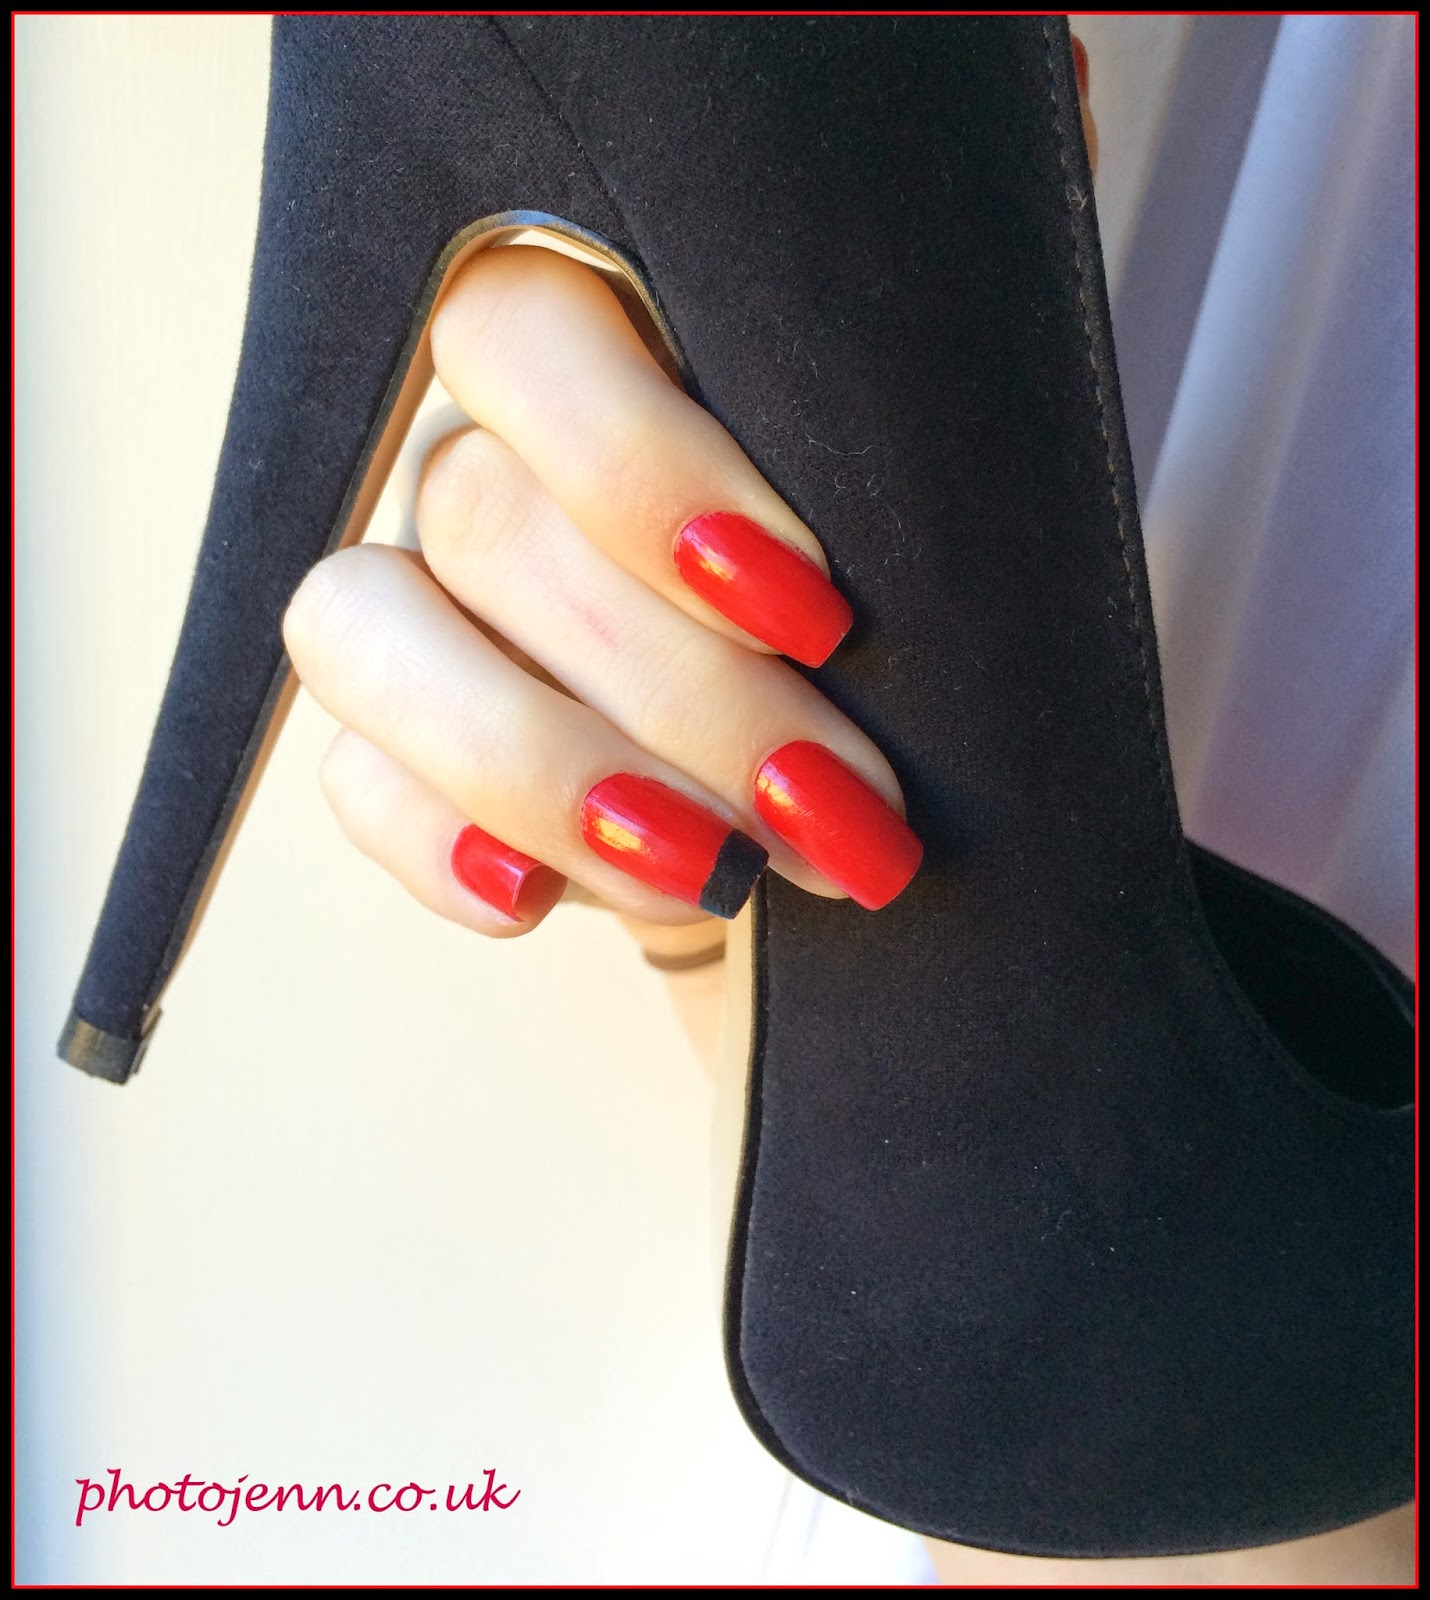 christian-louboutin-inspired-nails